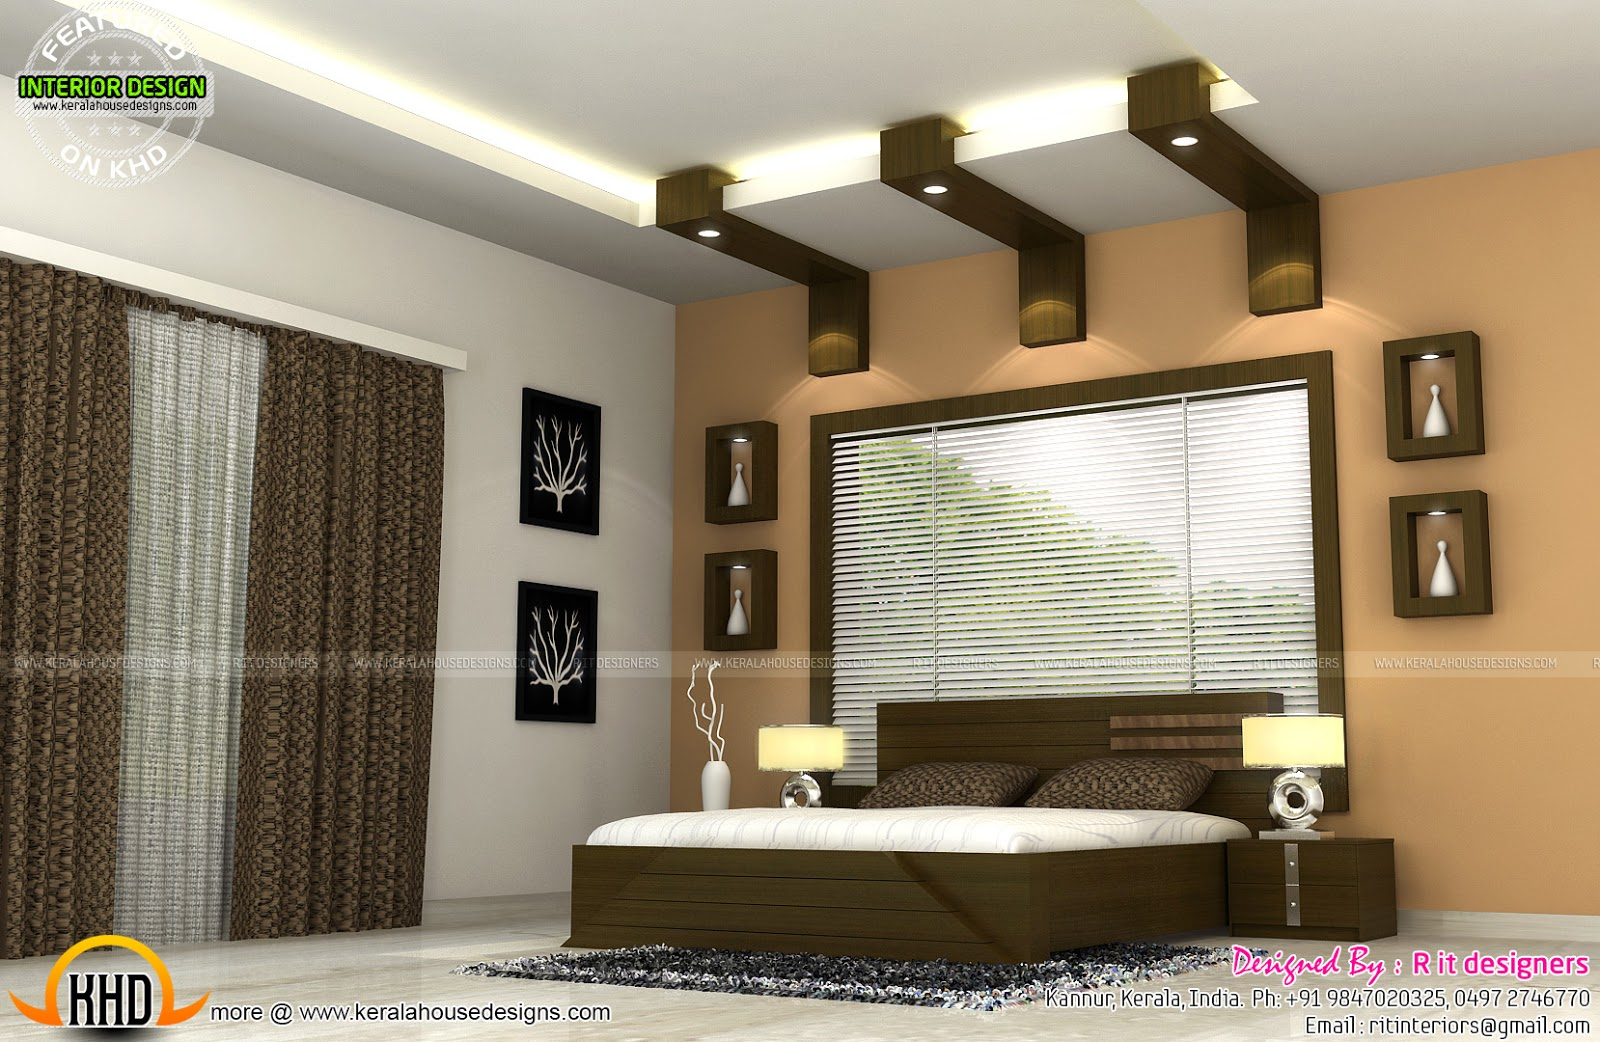 Interiors of bedrooms and kitchen kerala home design and for House interior ideas